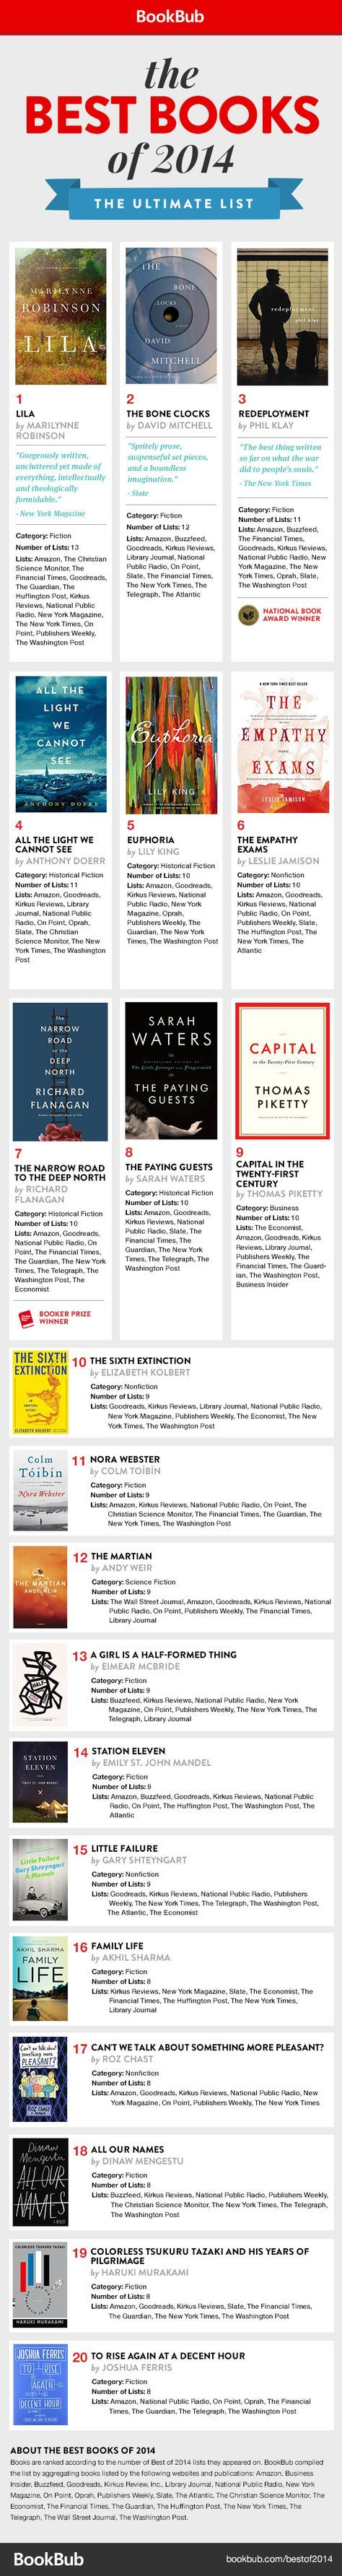 Last week we shared an infographic created by designer David McCandless that suggests To Kill a Mockingbird is likely the most-recommended novel of all time (or at least of recent times). But what are critics and readers suggesting you pick up this year best books 2014  http://myjourneywithdepression.wordpress.com/2012/08/21/booker-award-my-top-five-books-of-all-time/  http://www.huffingtonpost.com/2013/01/30/10-life-lessons-from-high_n_2583976.html?ir=UK+Culture&ref=topbar